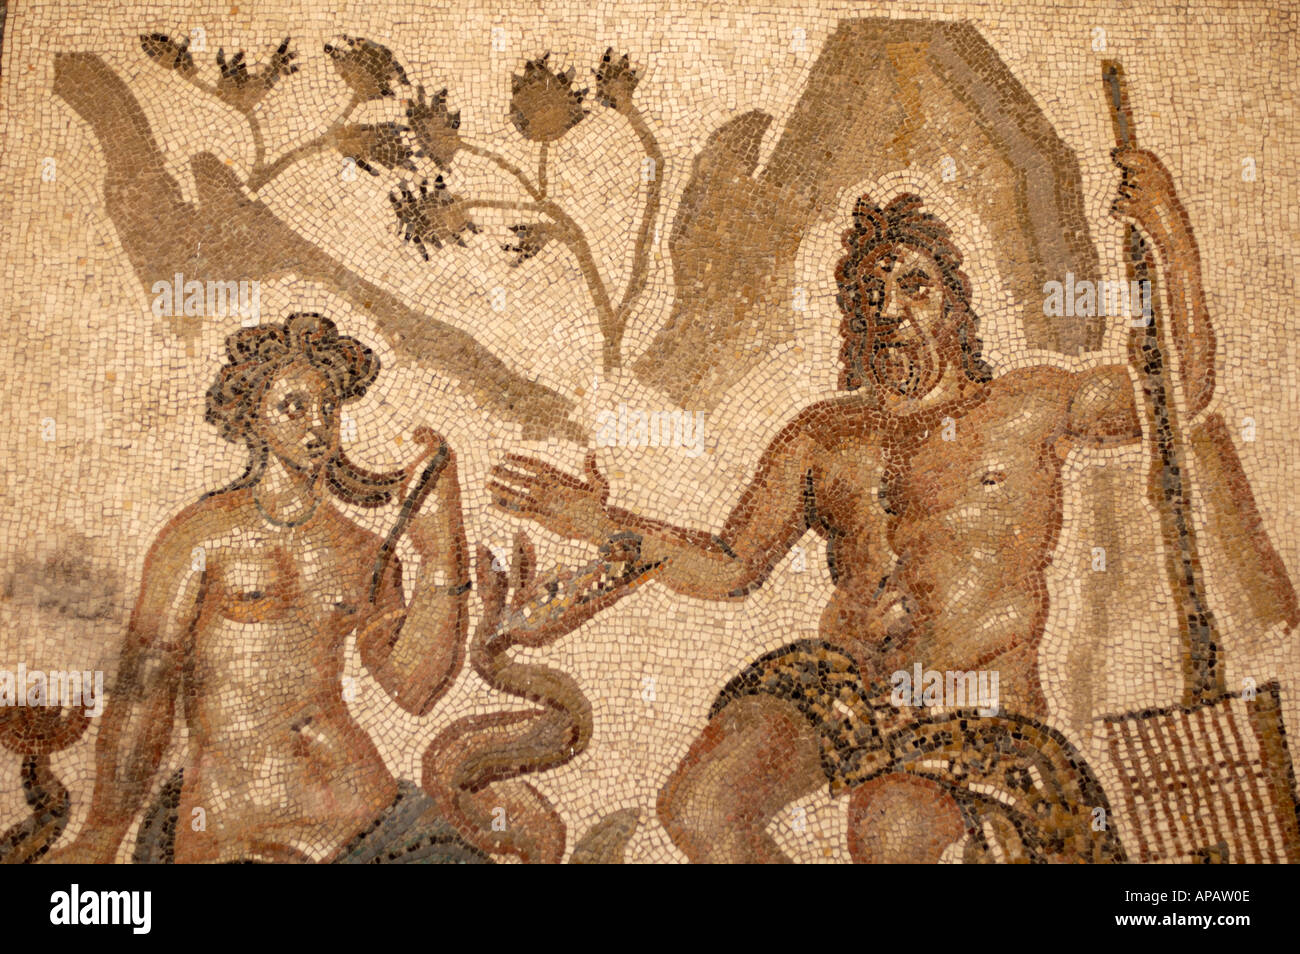 Mosaic depicting the Roman god Neptune inside the Catedral de Cordoba, a former medieval mosque, Cordoba, Andalusia, Spain. - Stock Image